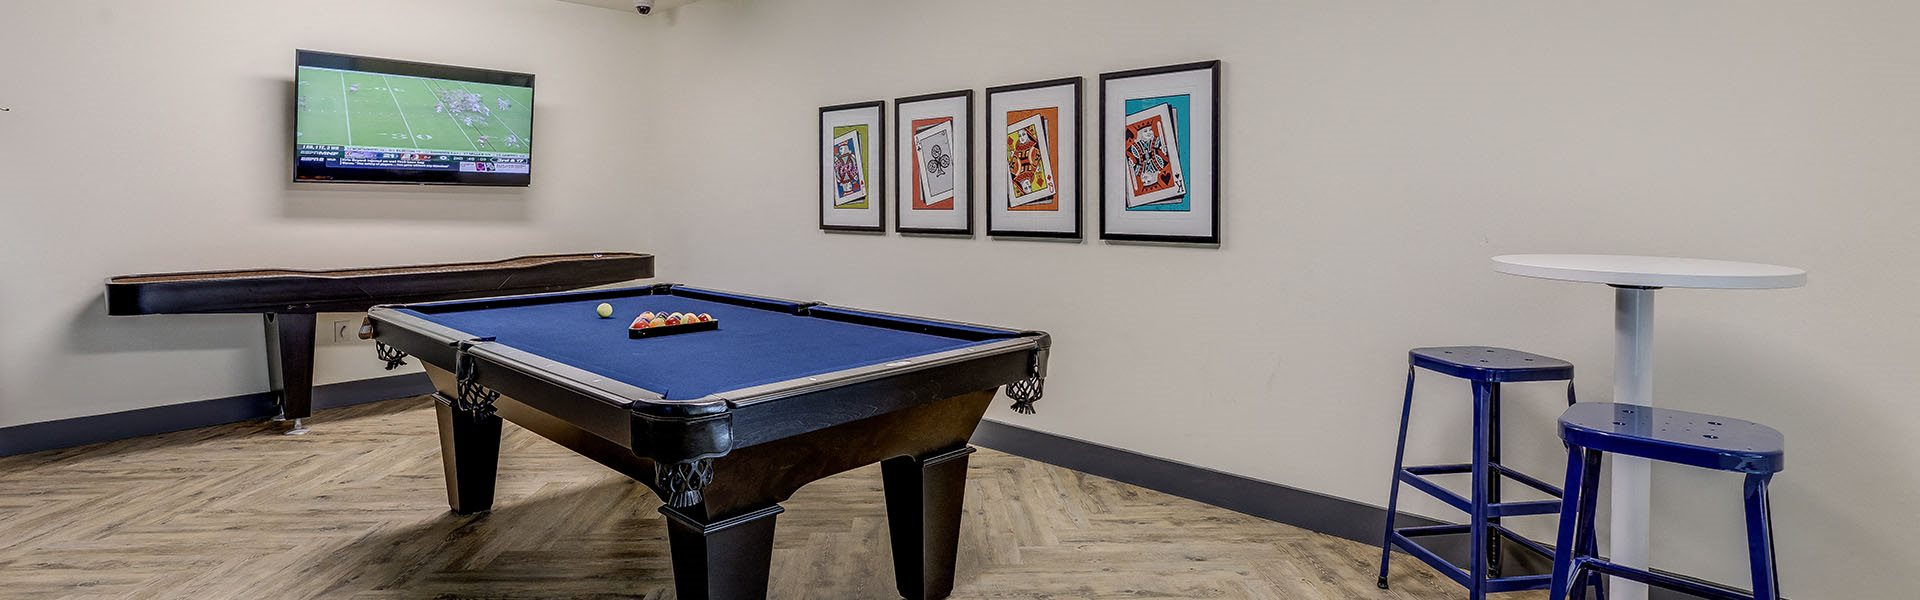 Southside by Vintage l pool table and game room